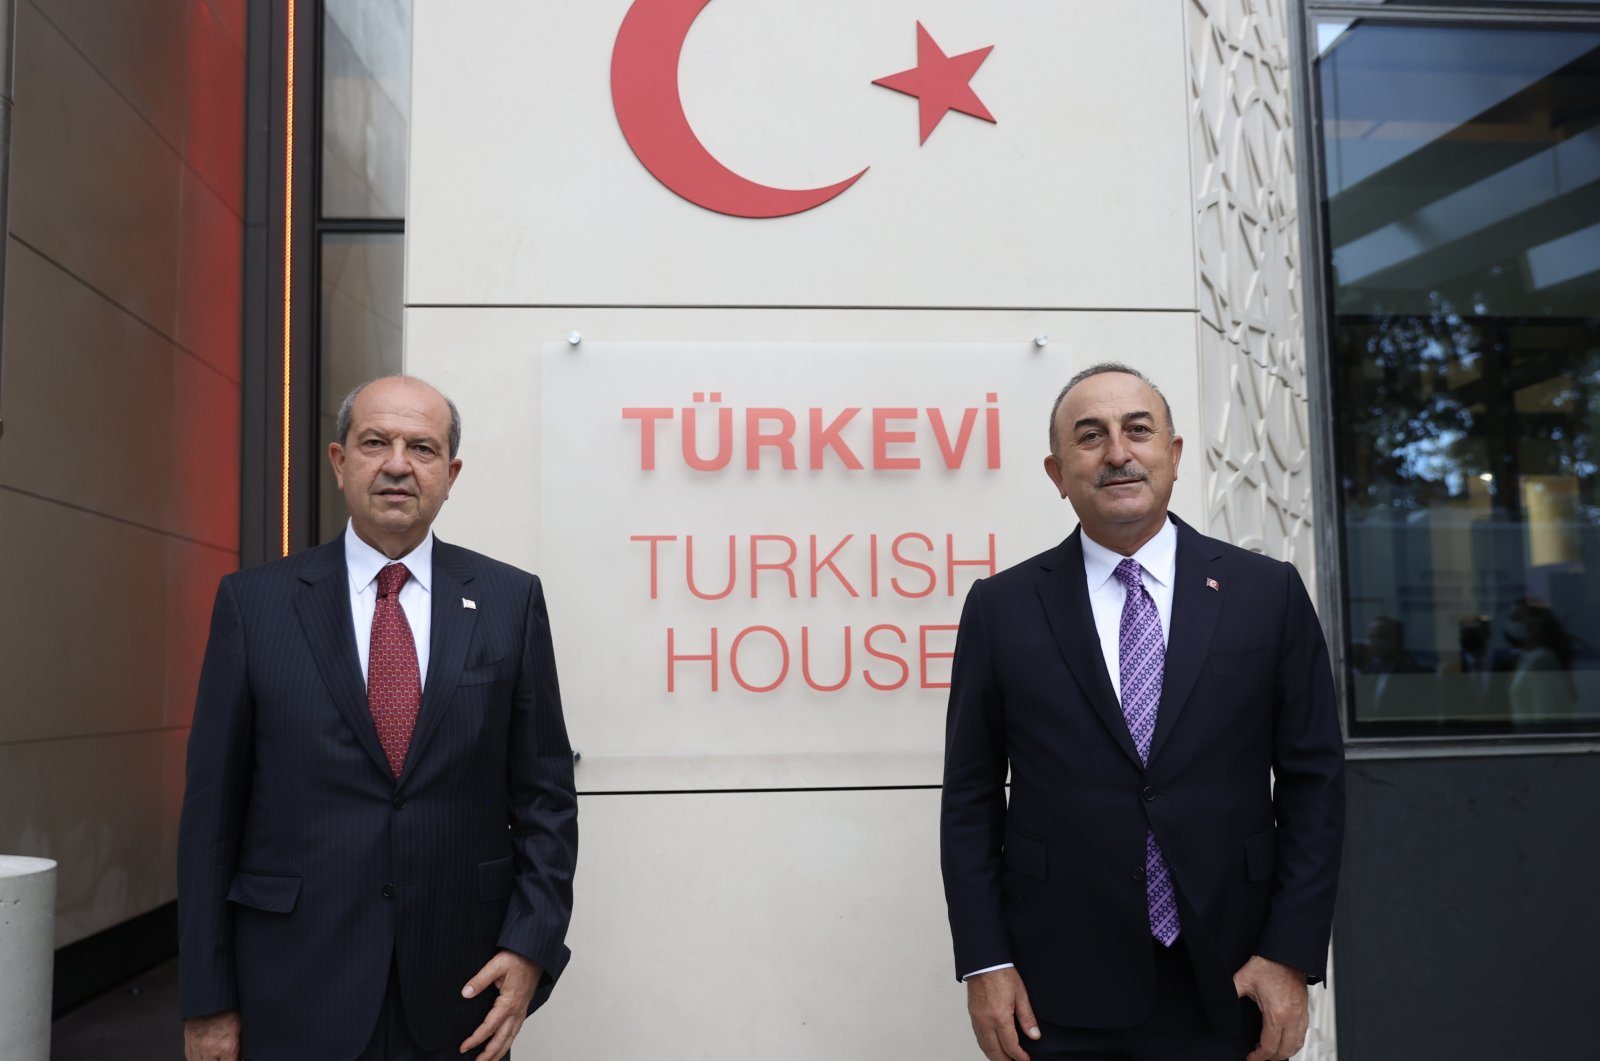 Turkey's Foreign Minister Mevlüt Çavuşoğlu and Turkish Cypriot President Ersin Tatar are seen in front of the Turkish House (Türkevi) in New York, U.S., Sept. 24, 2021. (AA Photo)